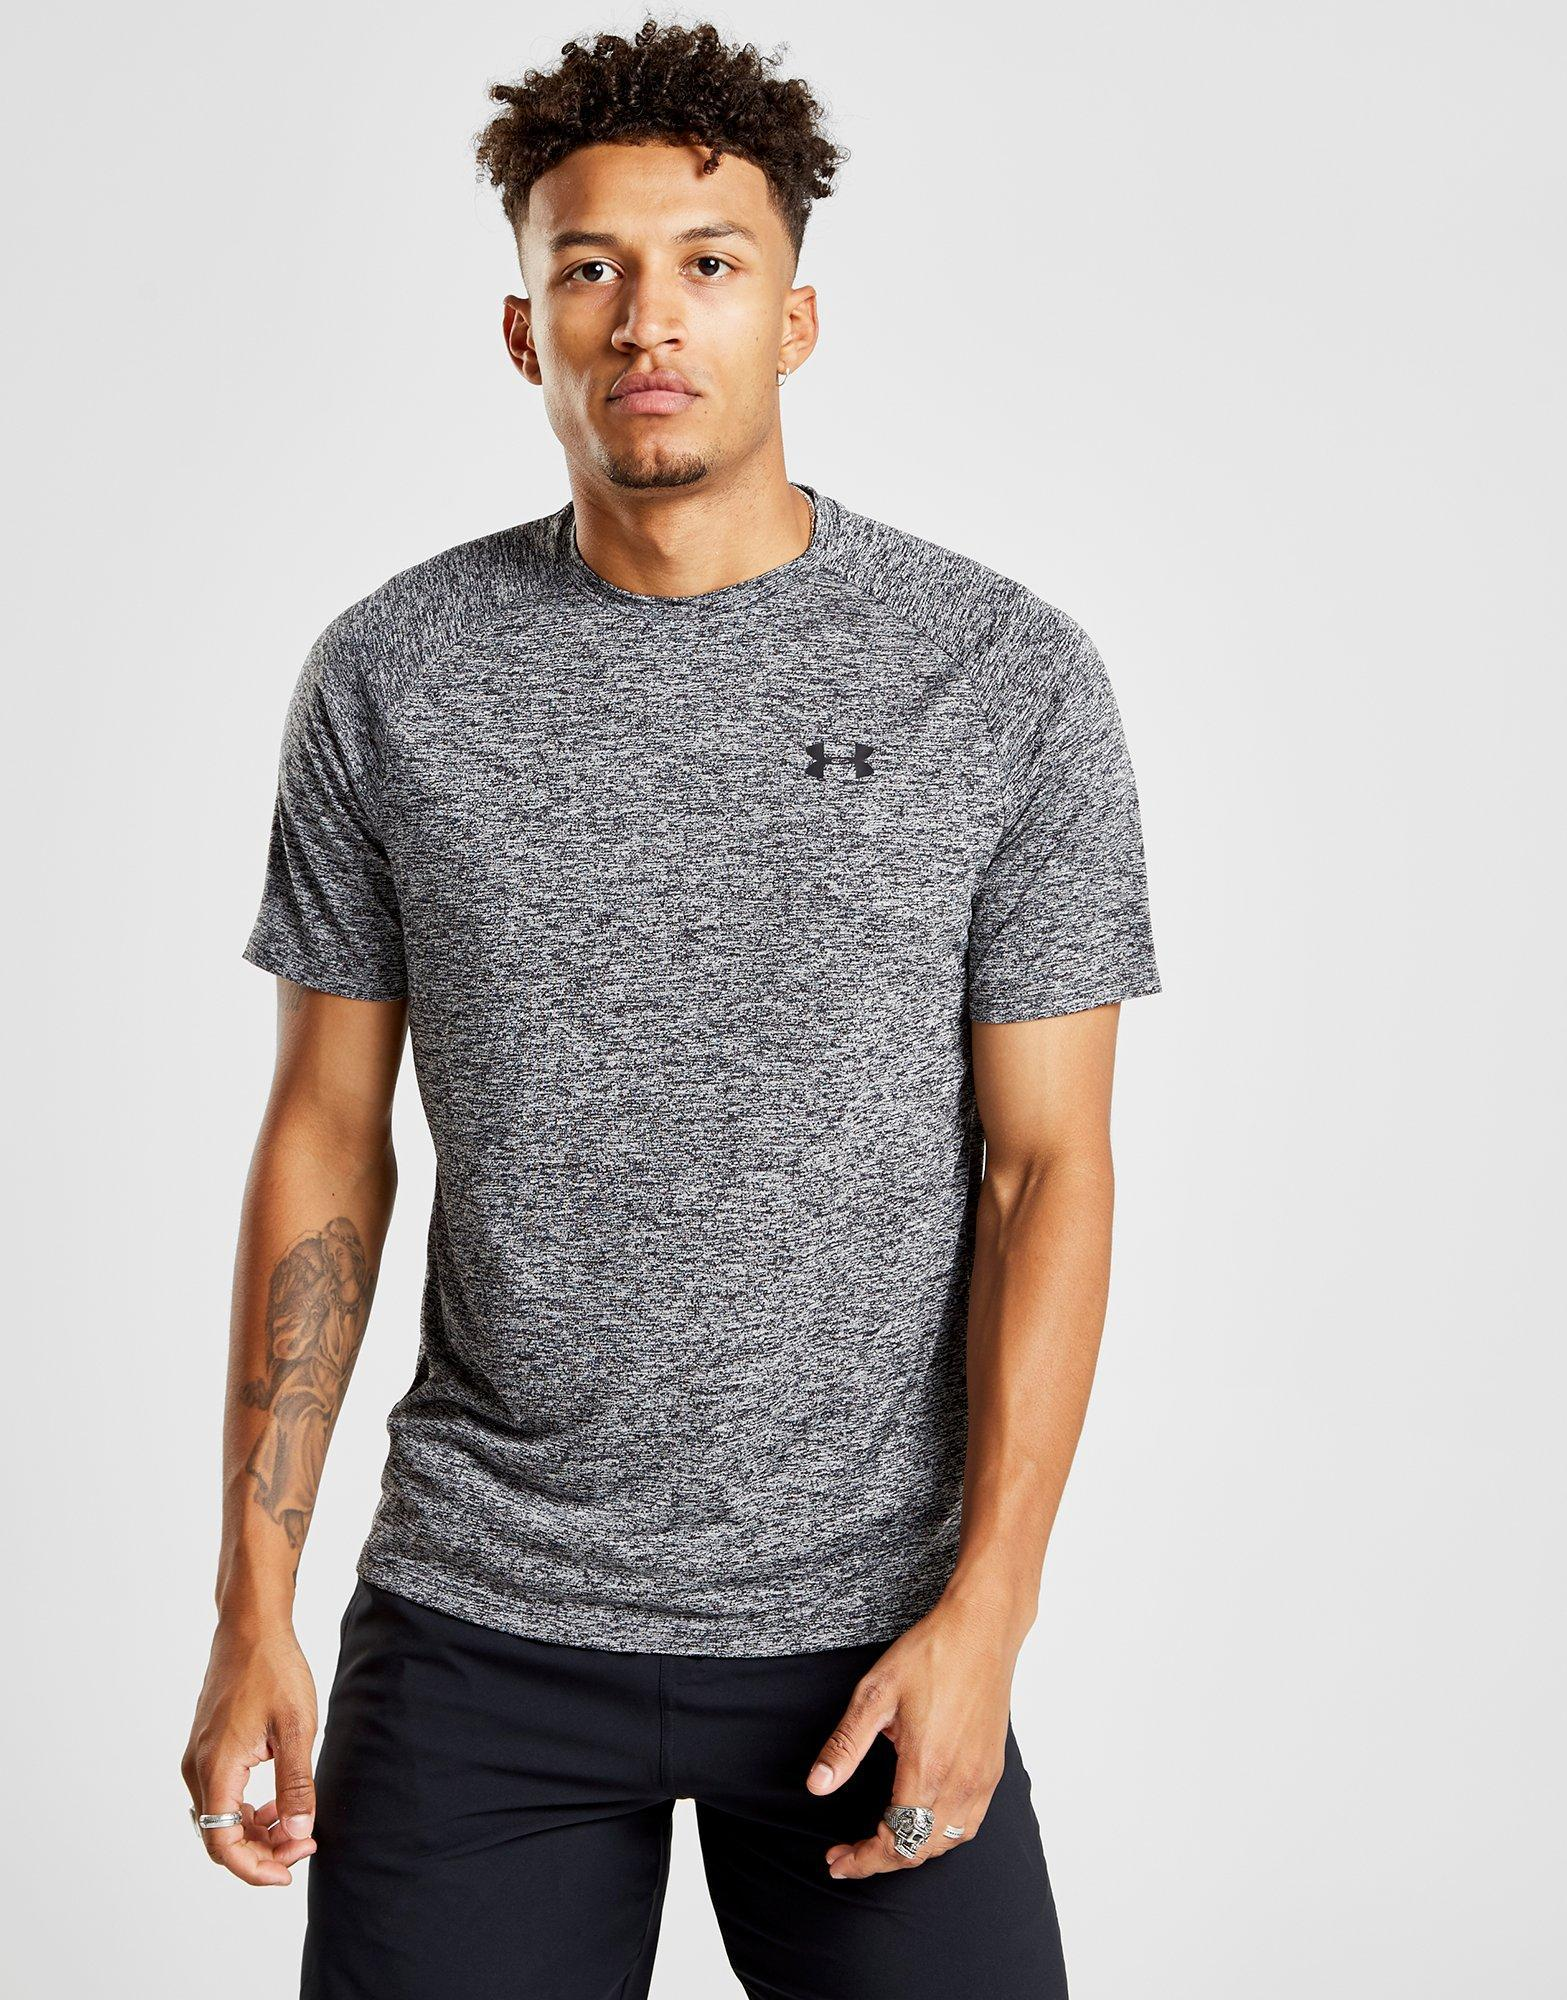 0d952b50d732f Under Armour Tech T-shirt in Gray for Men - Lyst